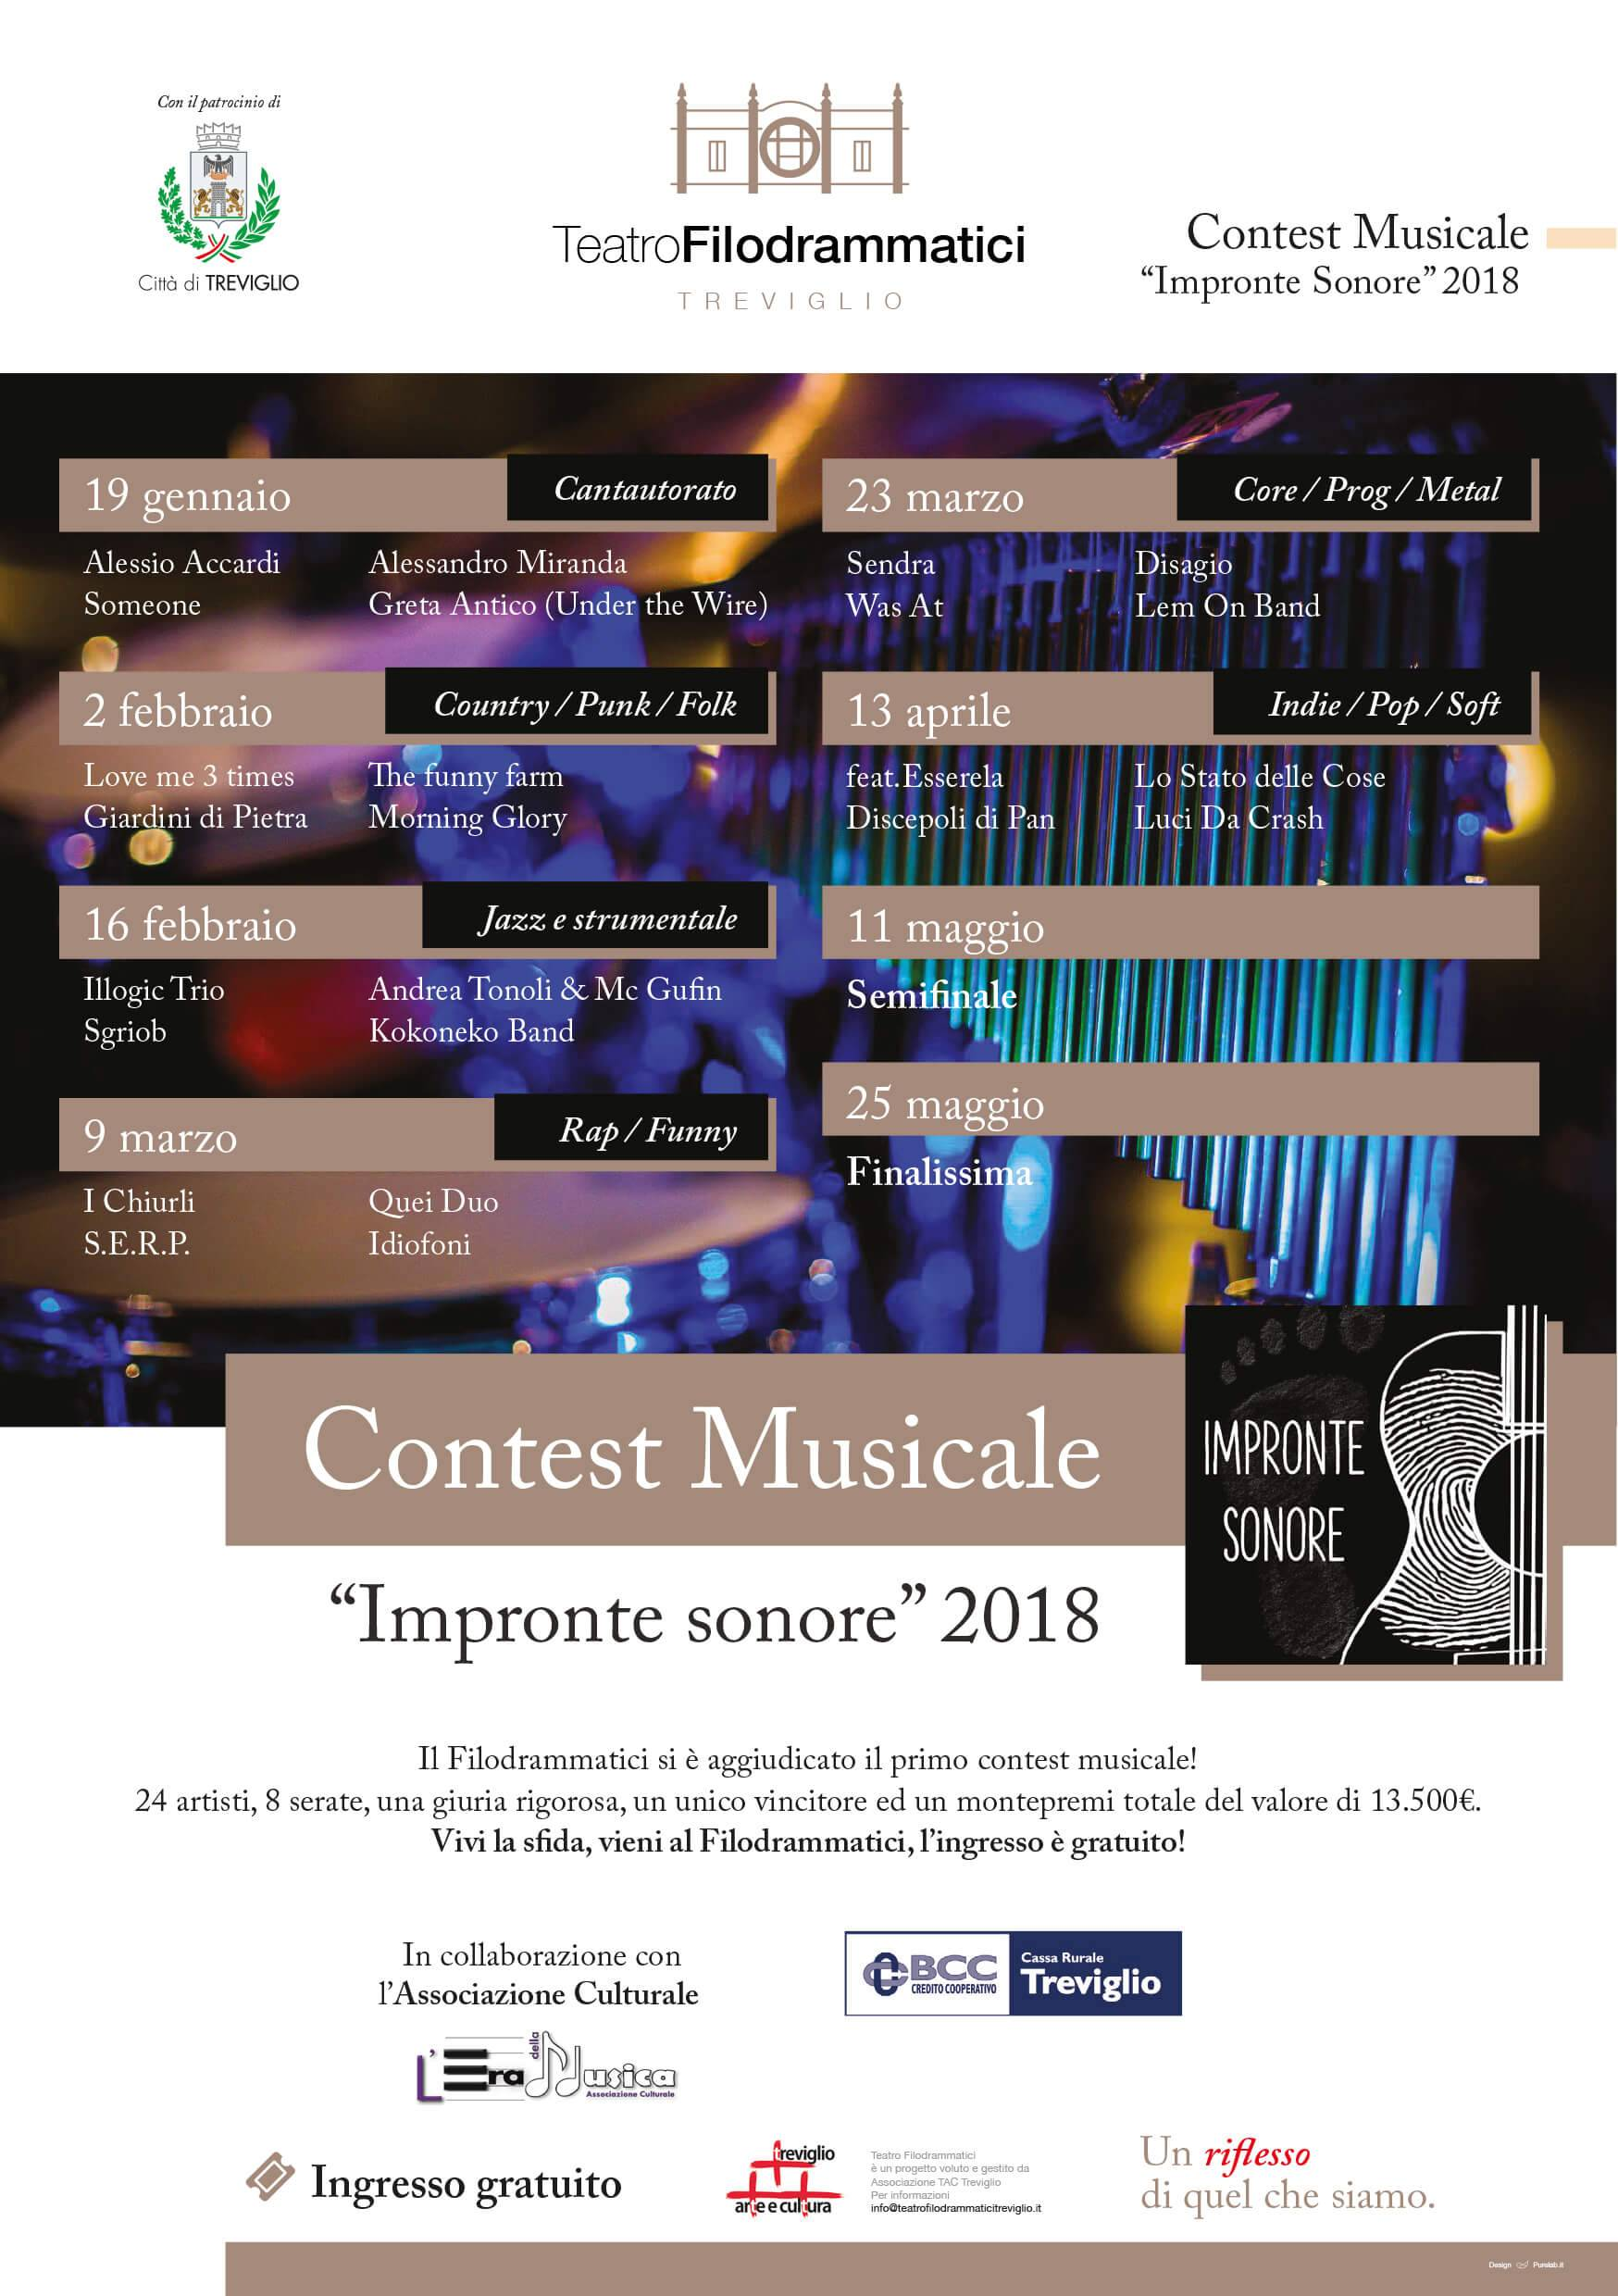 tft_contest_musicale_17_18_A5_def